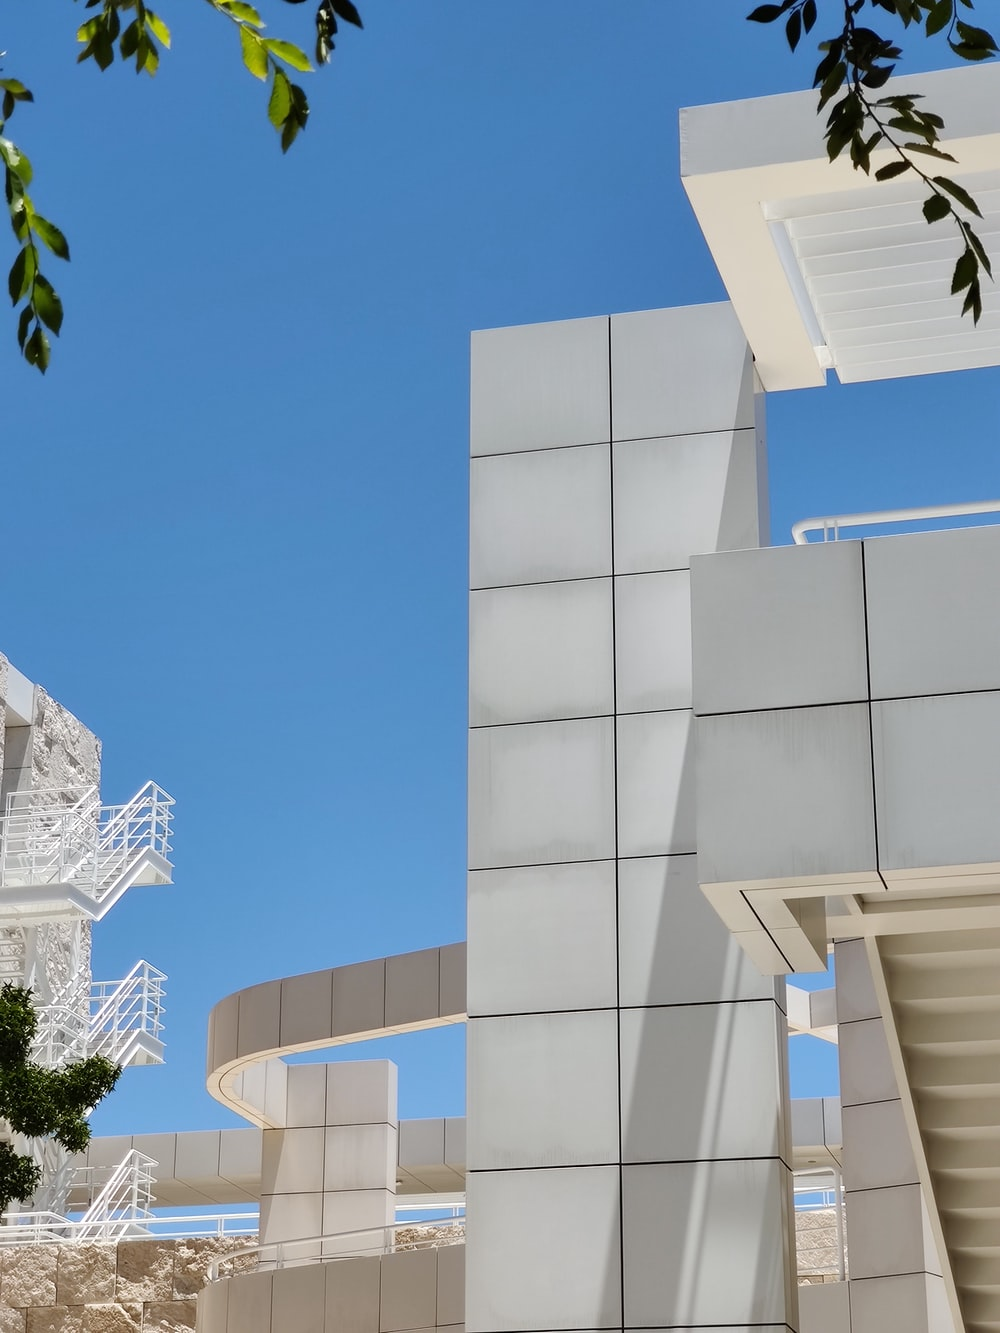 white painted building scenery